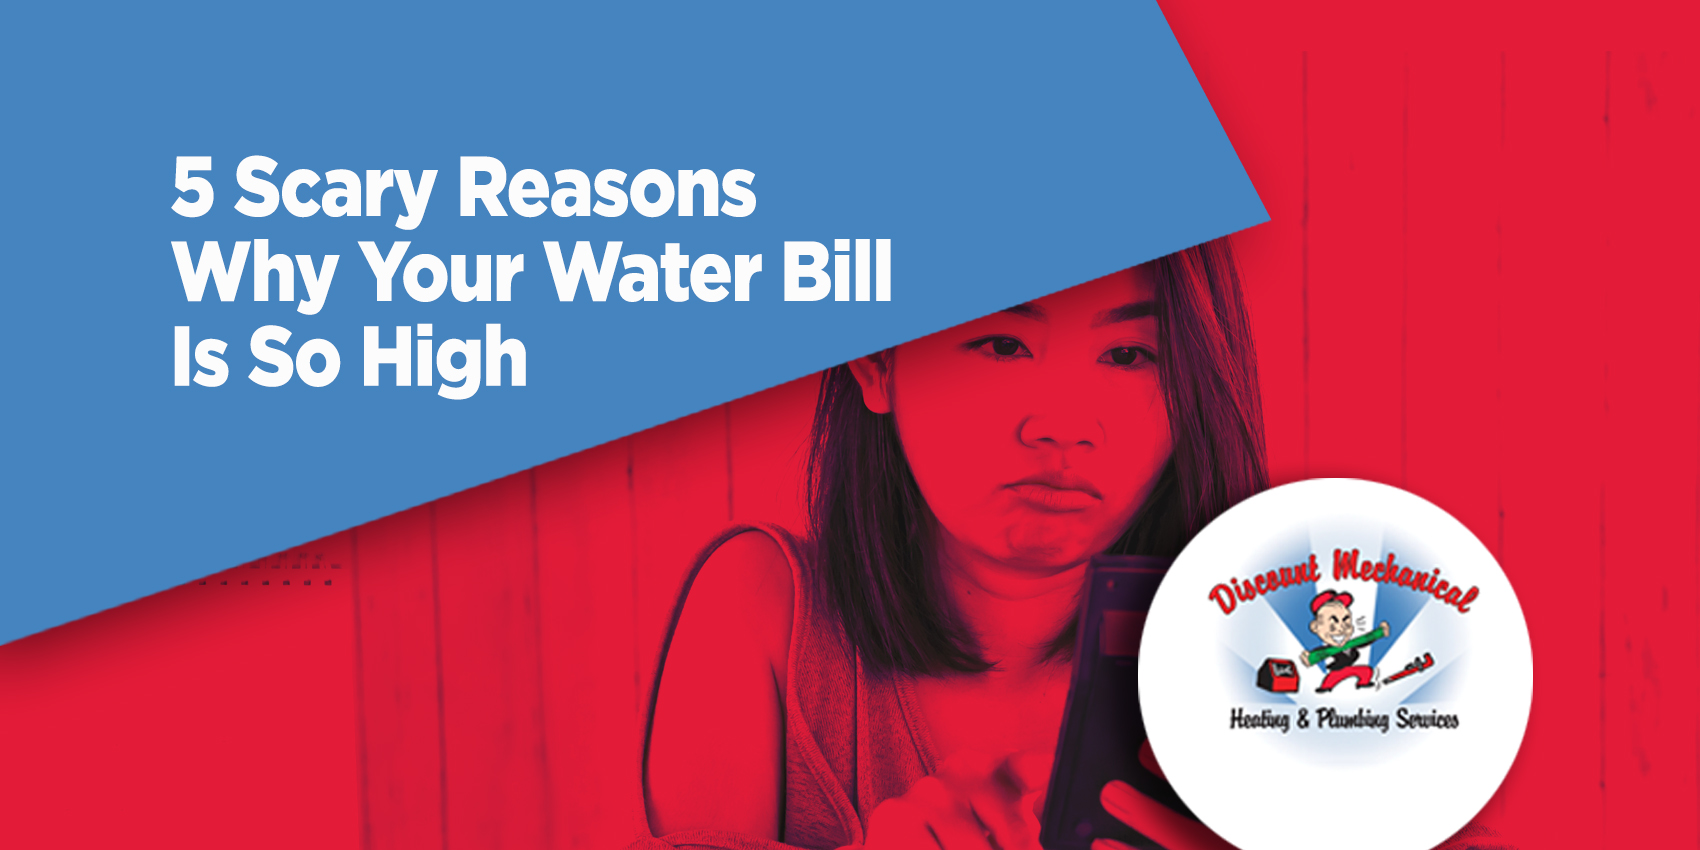 5 Scary Reasons Why Your Water Bill Is So High